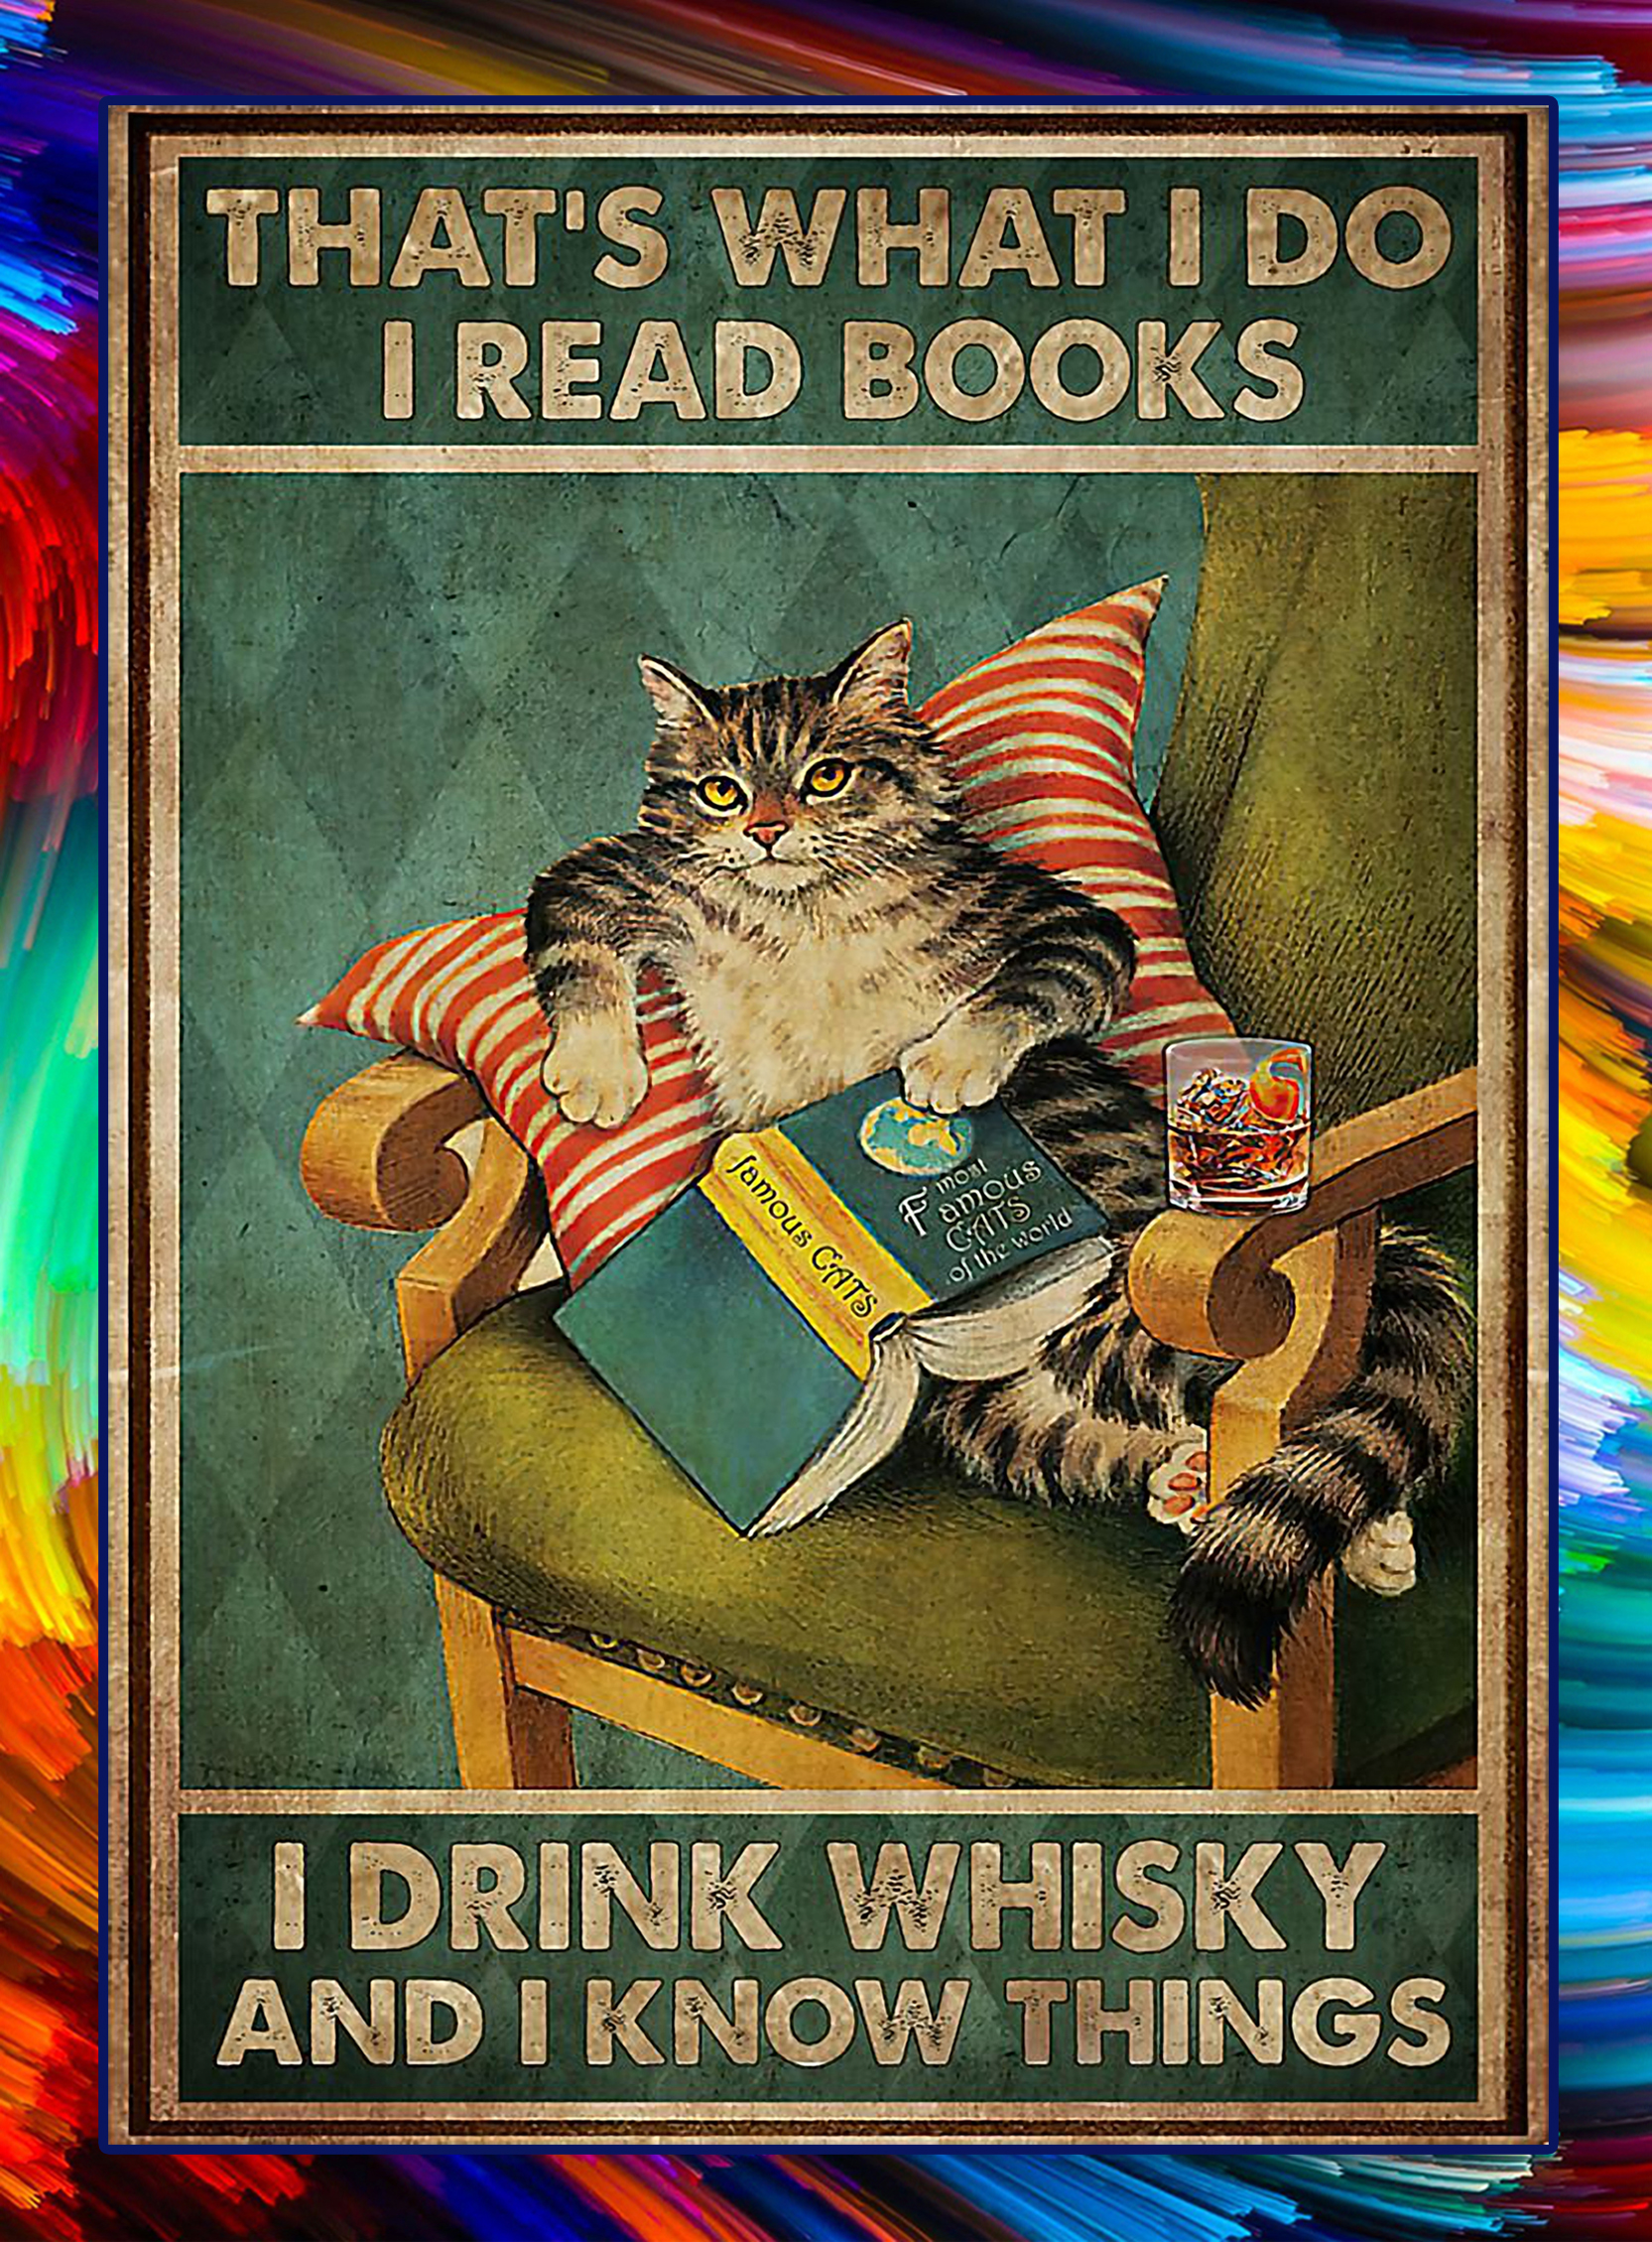 Cat that's what I do I read books I drink whisky and I know things poster - A3